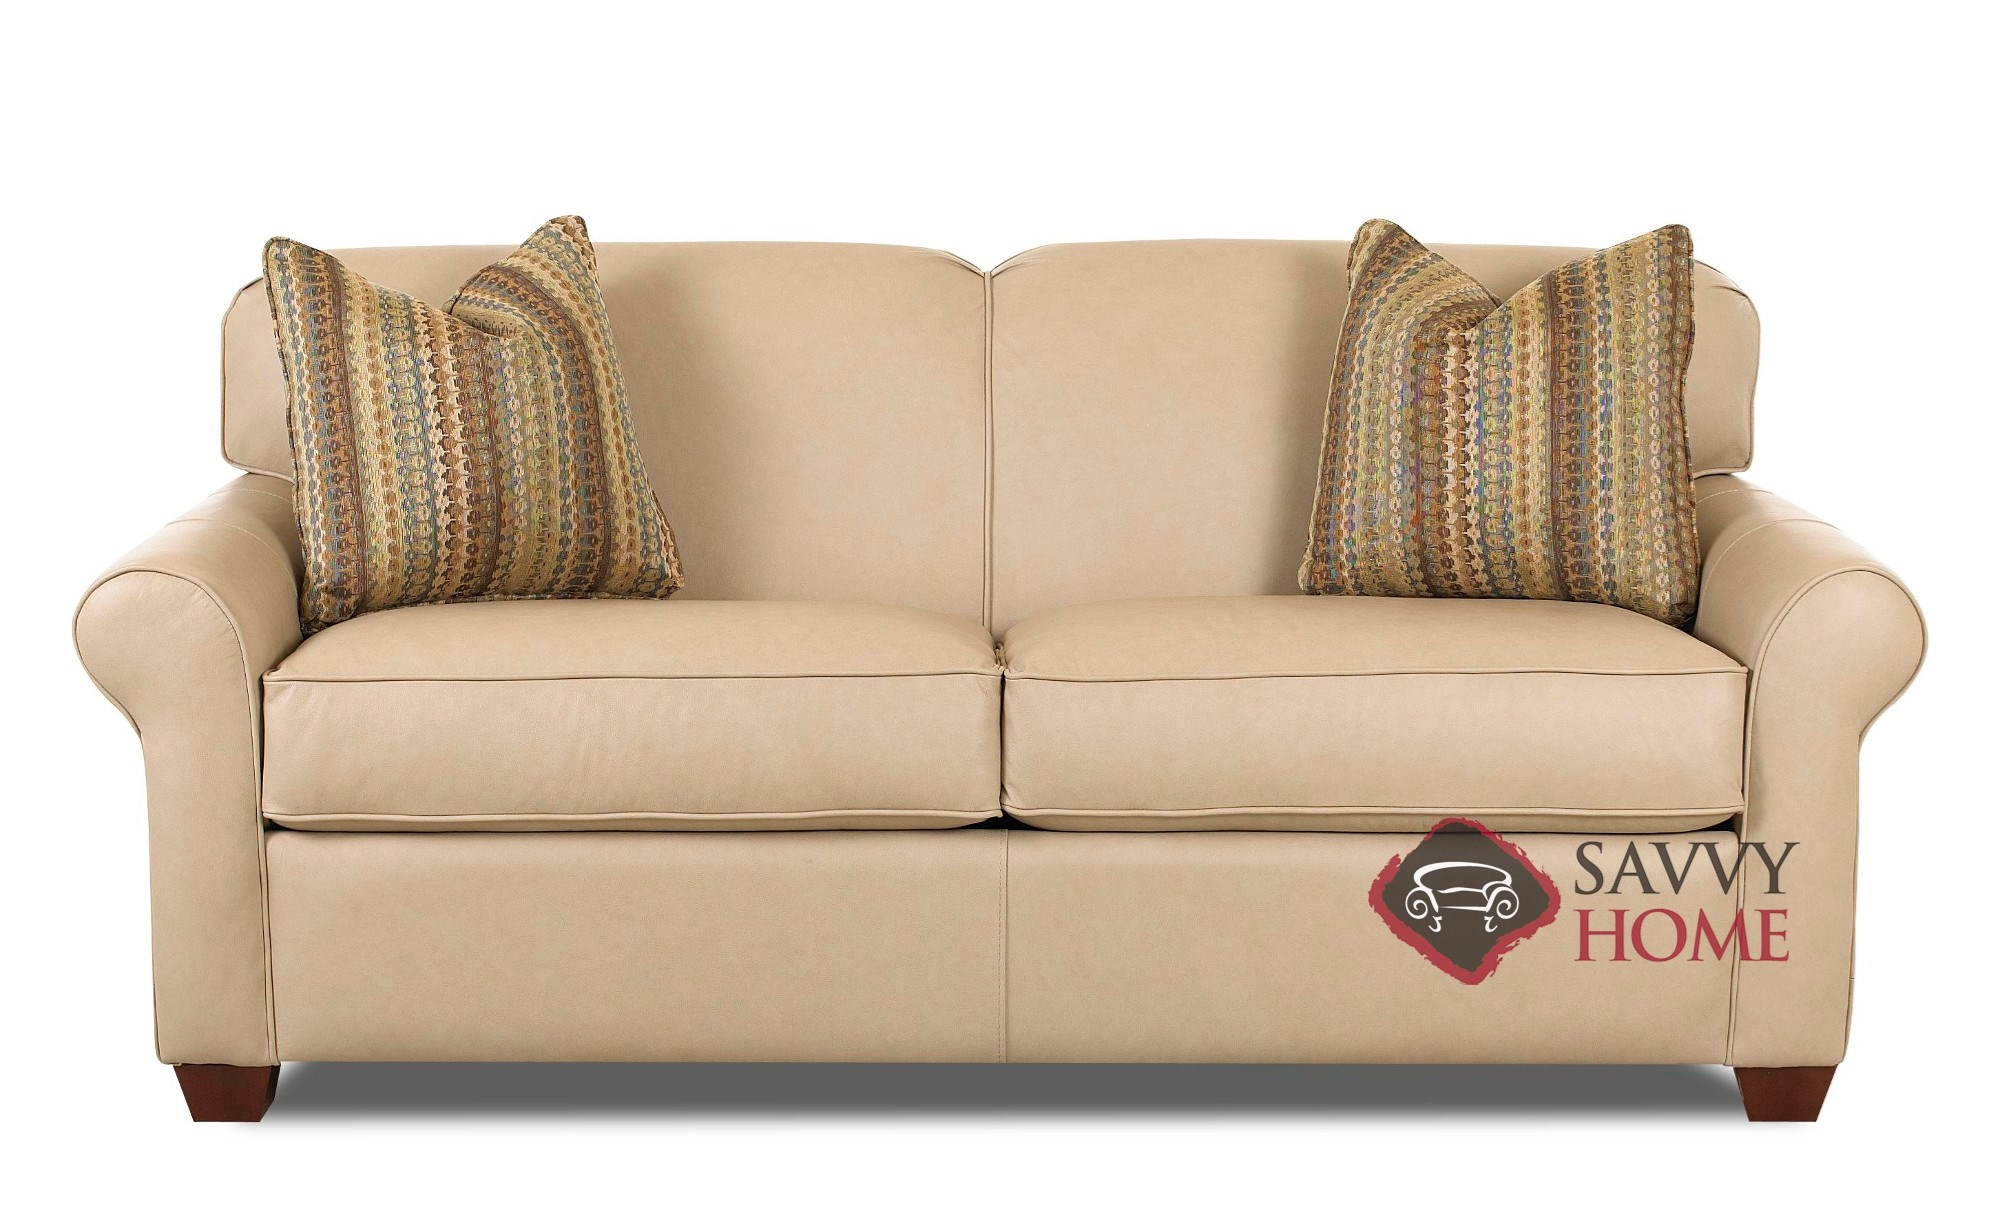 Affordable Furniture Calgary Calgary Leather Sleeper Sofas Full By Savvy Is Fully